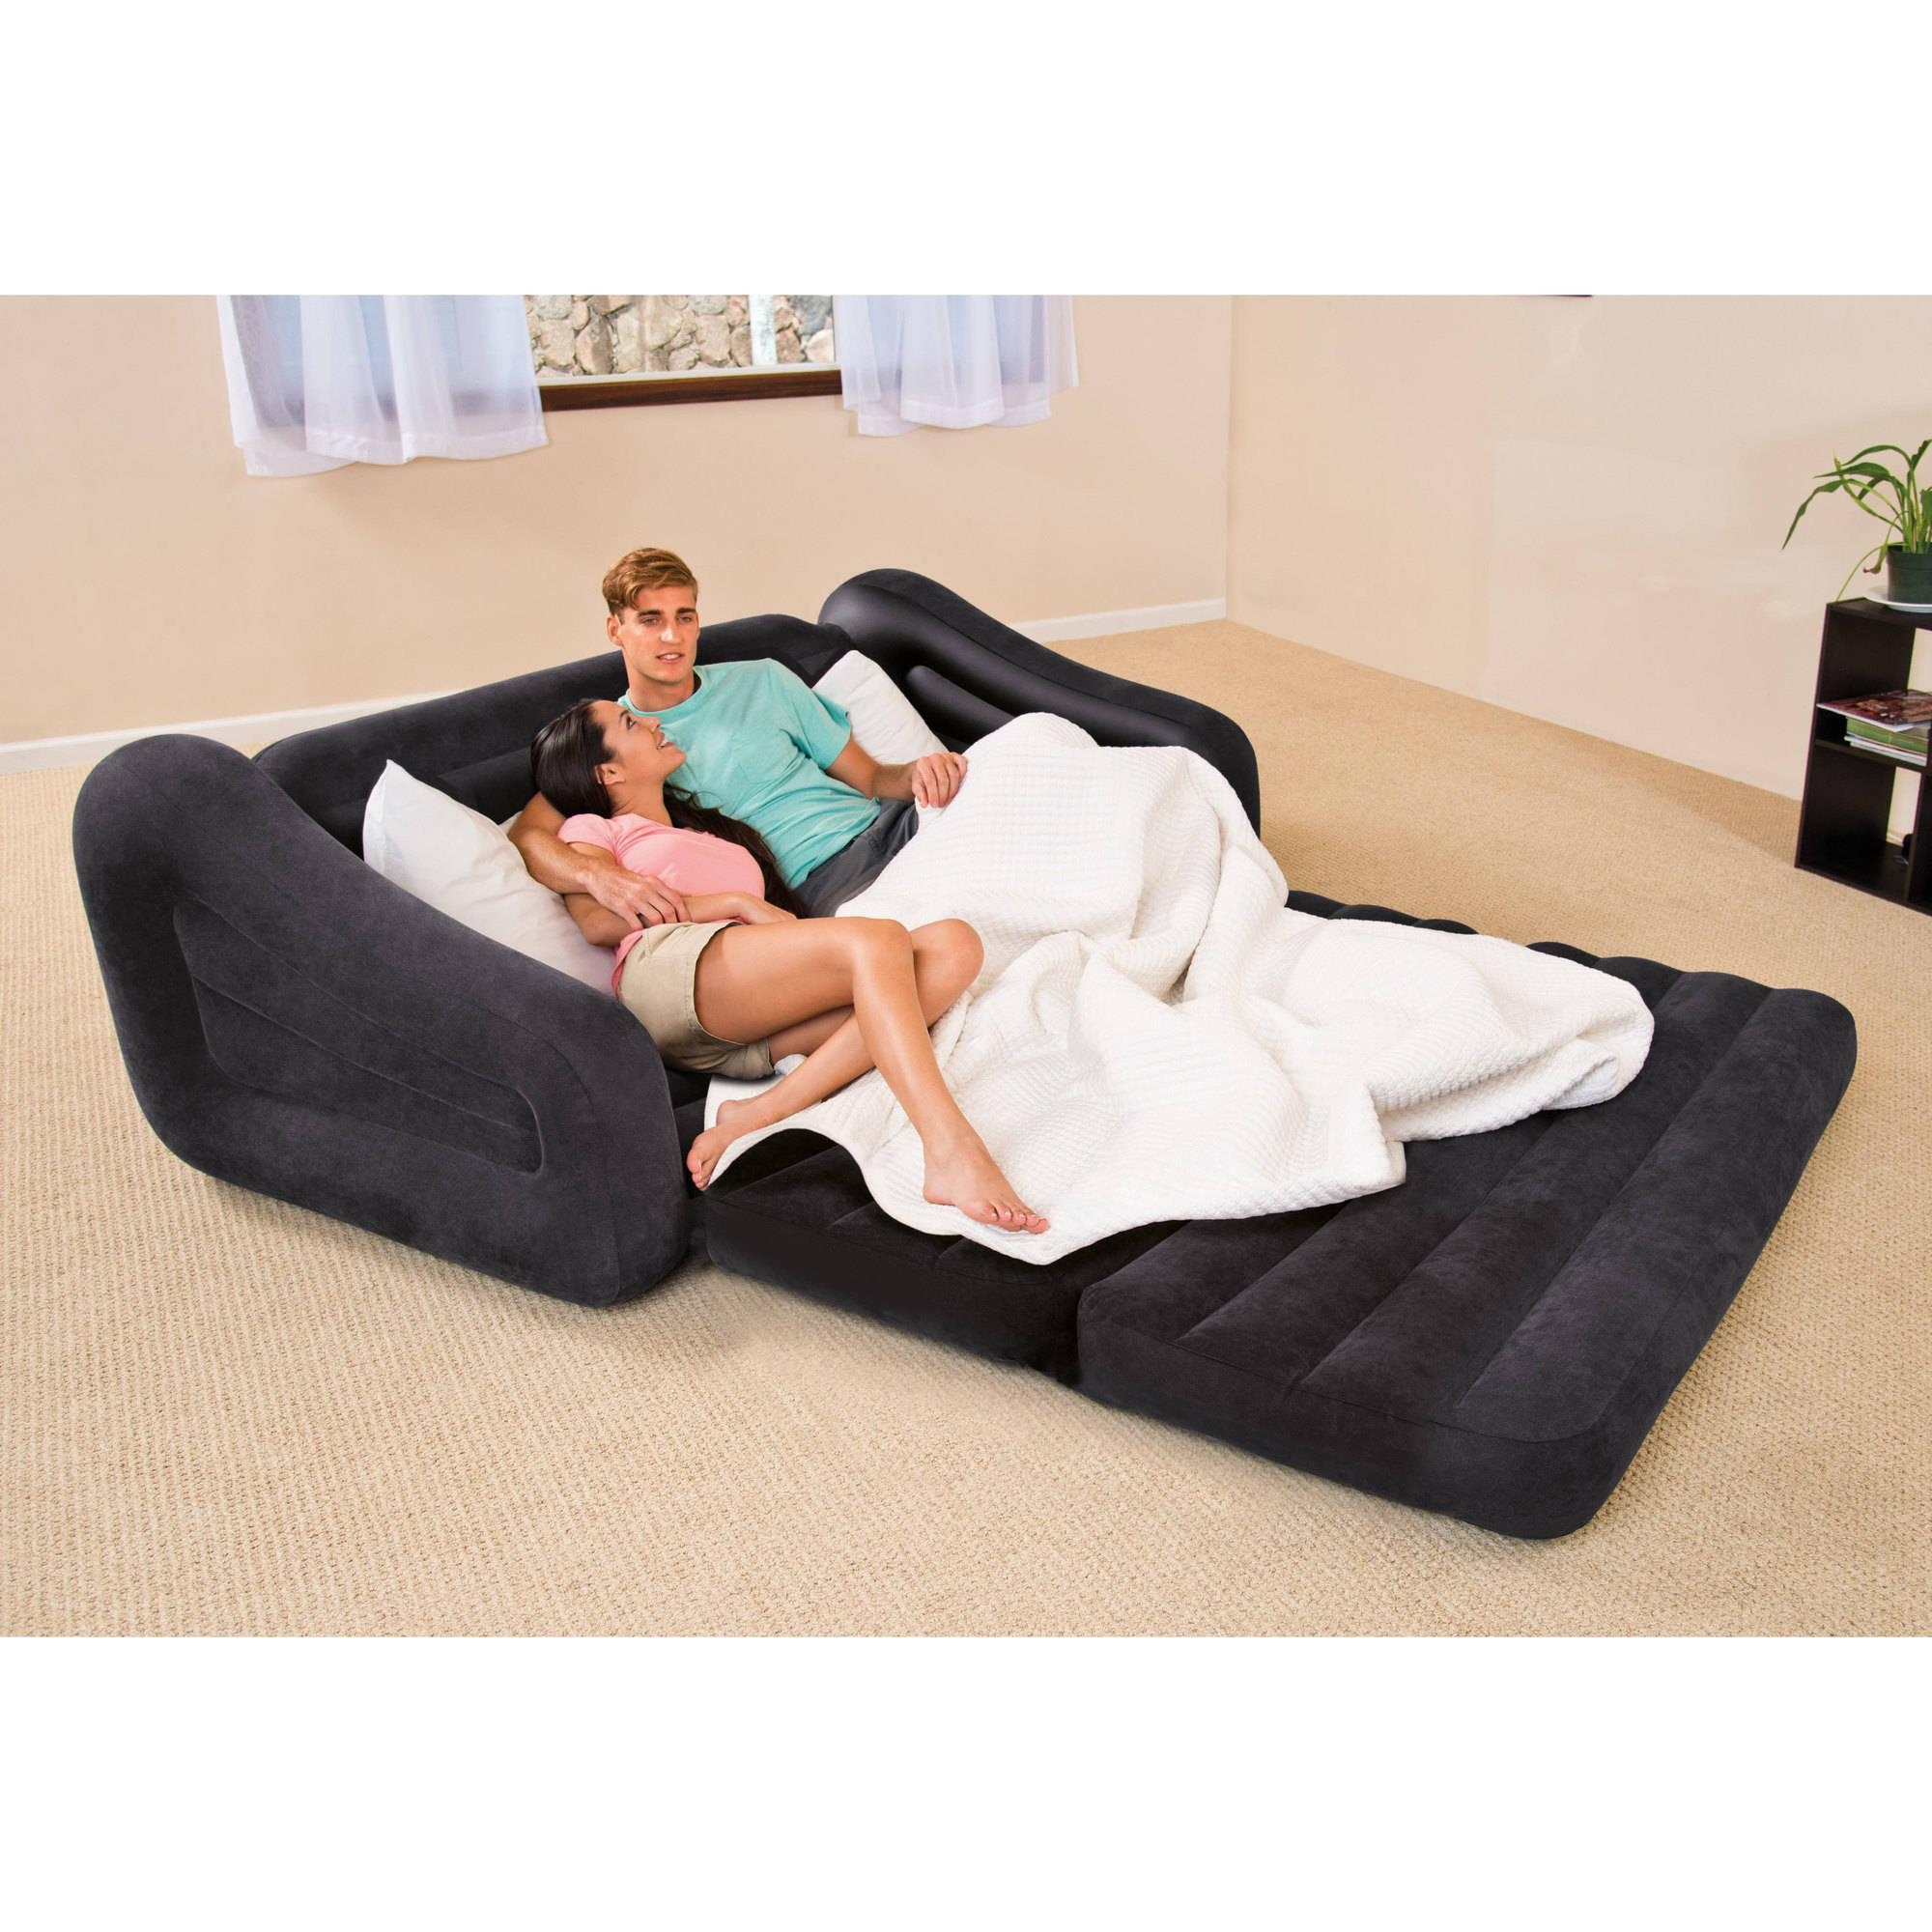 Intex Queen Inflatable Pull Out Sofa Bed – Walmart With Intex Sleep Sofas (Image 16 of 20)